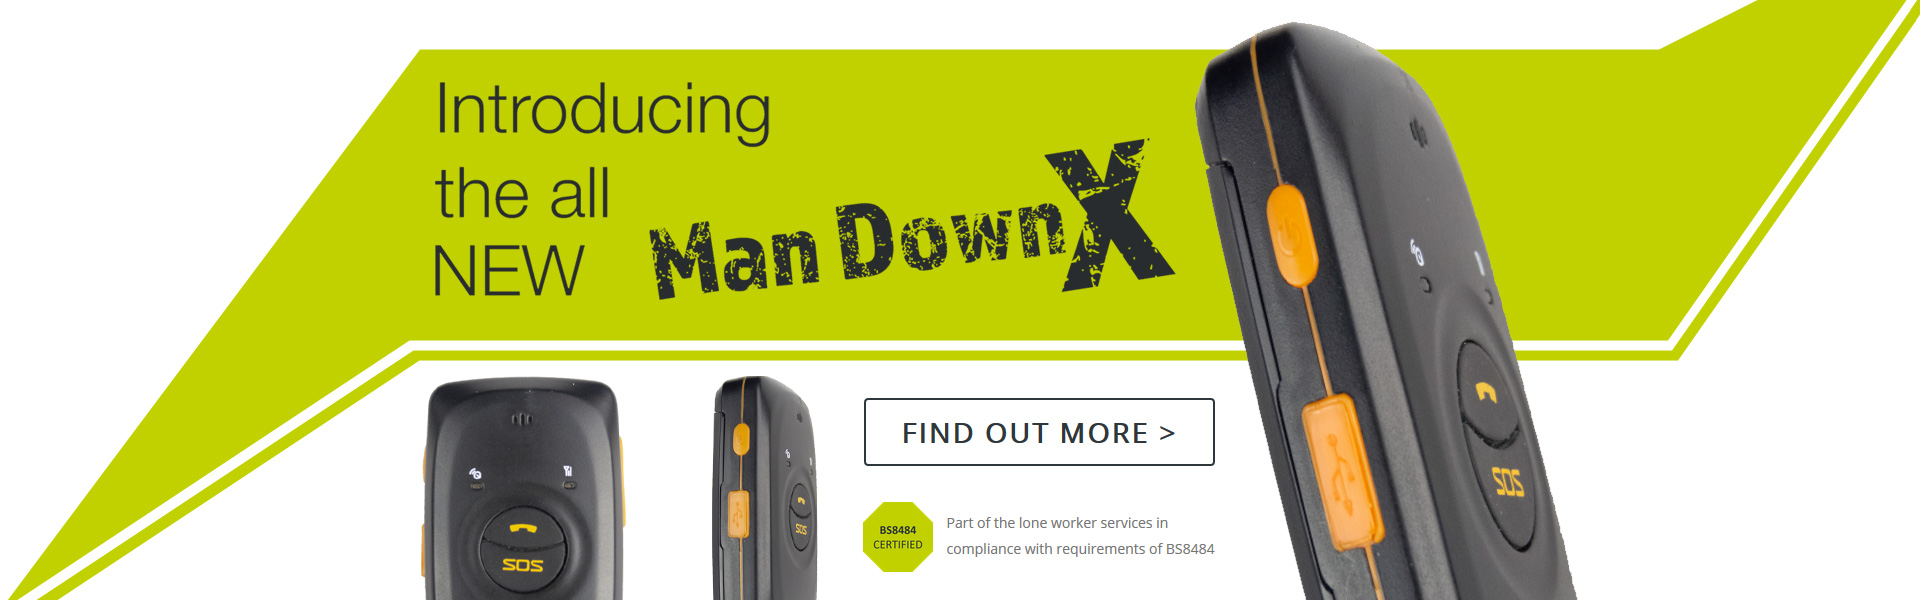 Introducing the all NEW Man Down X